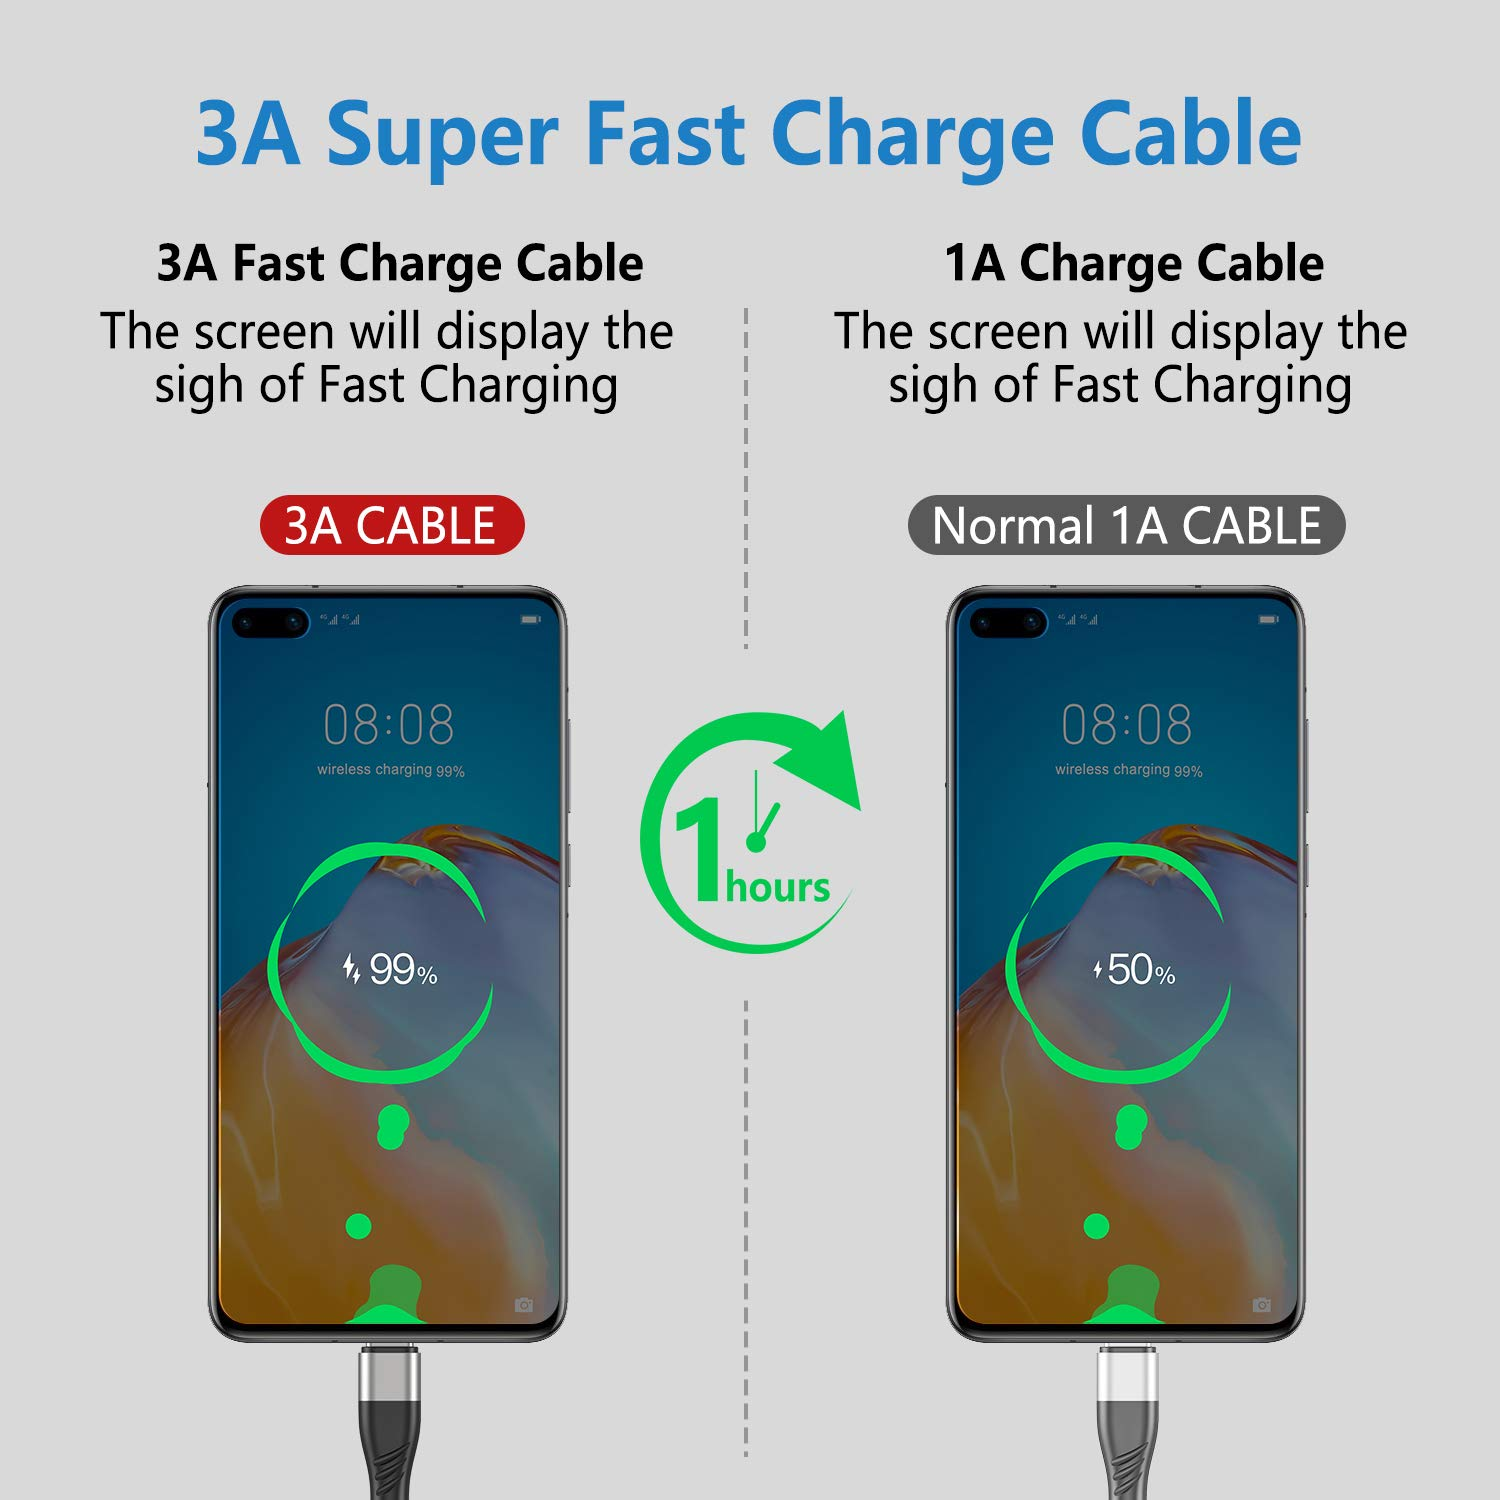 USB C Cable 10ft 3Pack Compatible for Samsung Galaxy S20//Plus//Ultra//S10,Niougreat USB A to Type C 3A Fast Charger Extra Long Premium Nylon Cord for S9 S8 Plus Note 20 10 9 8 Z Flip LG V50 V40 G8 G7